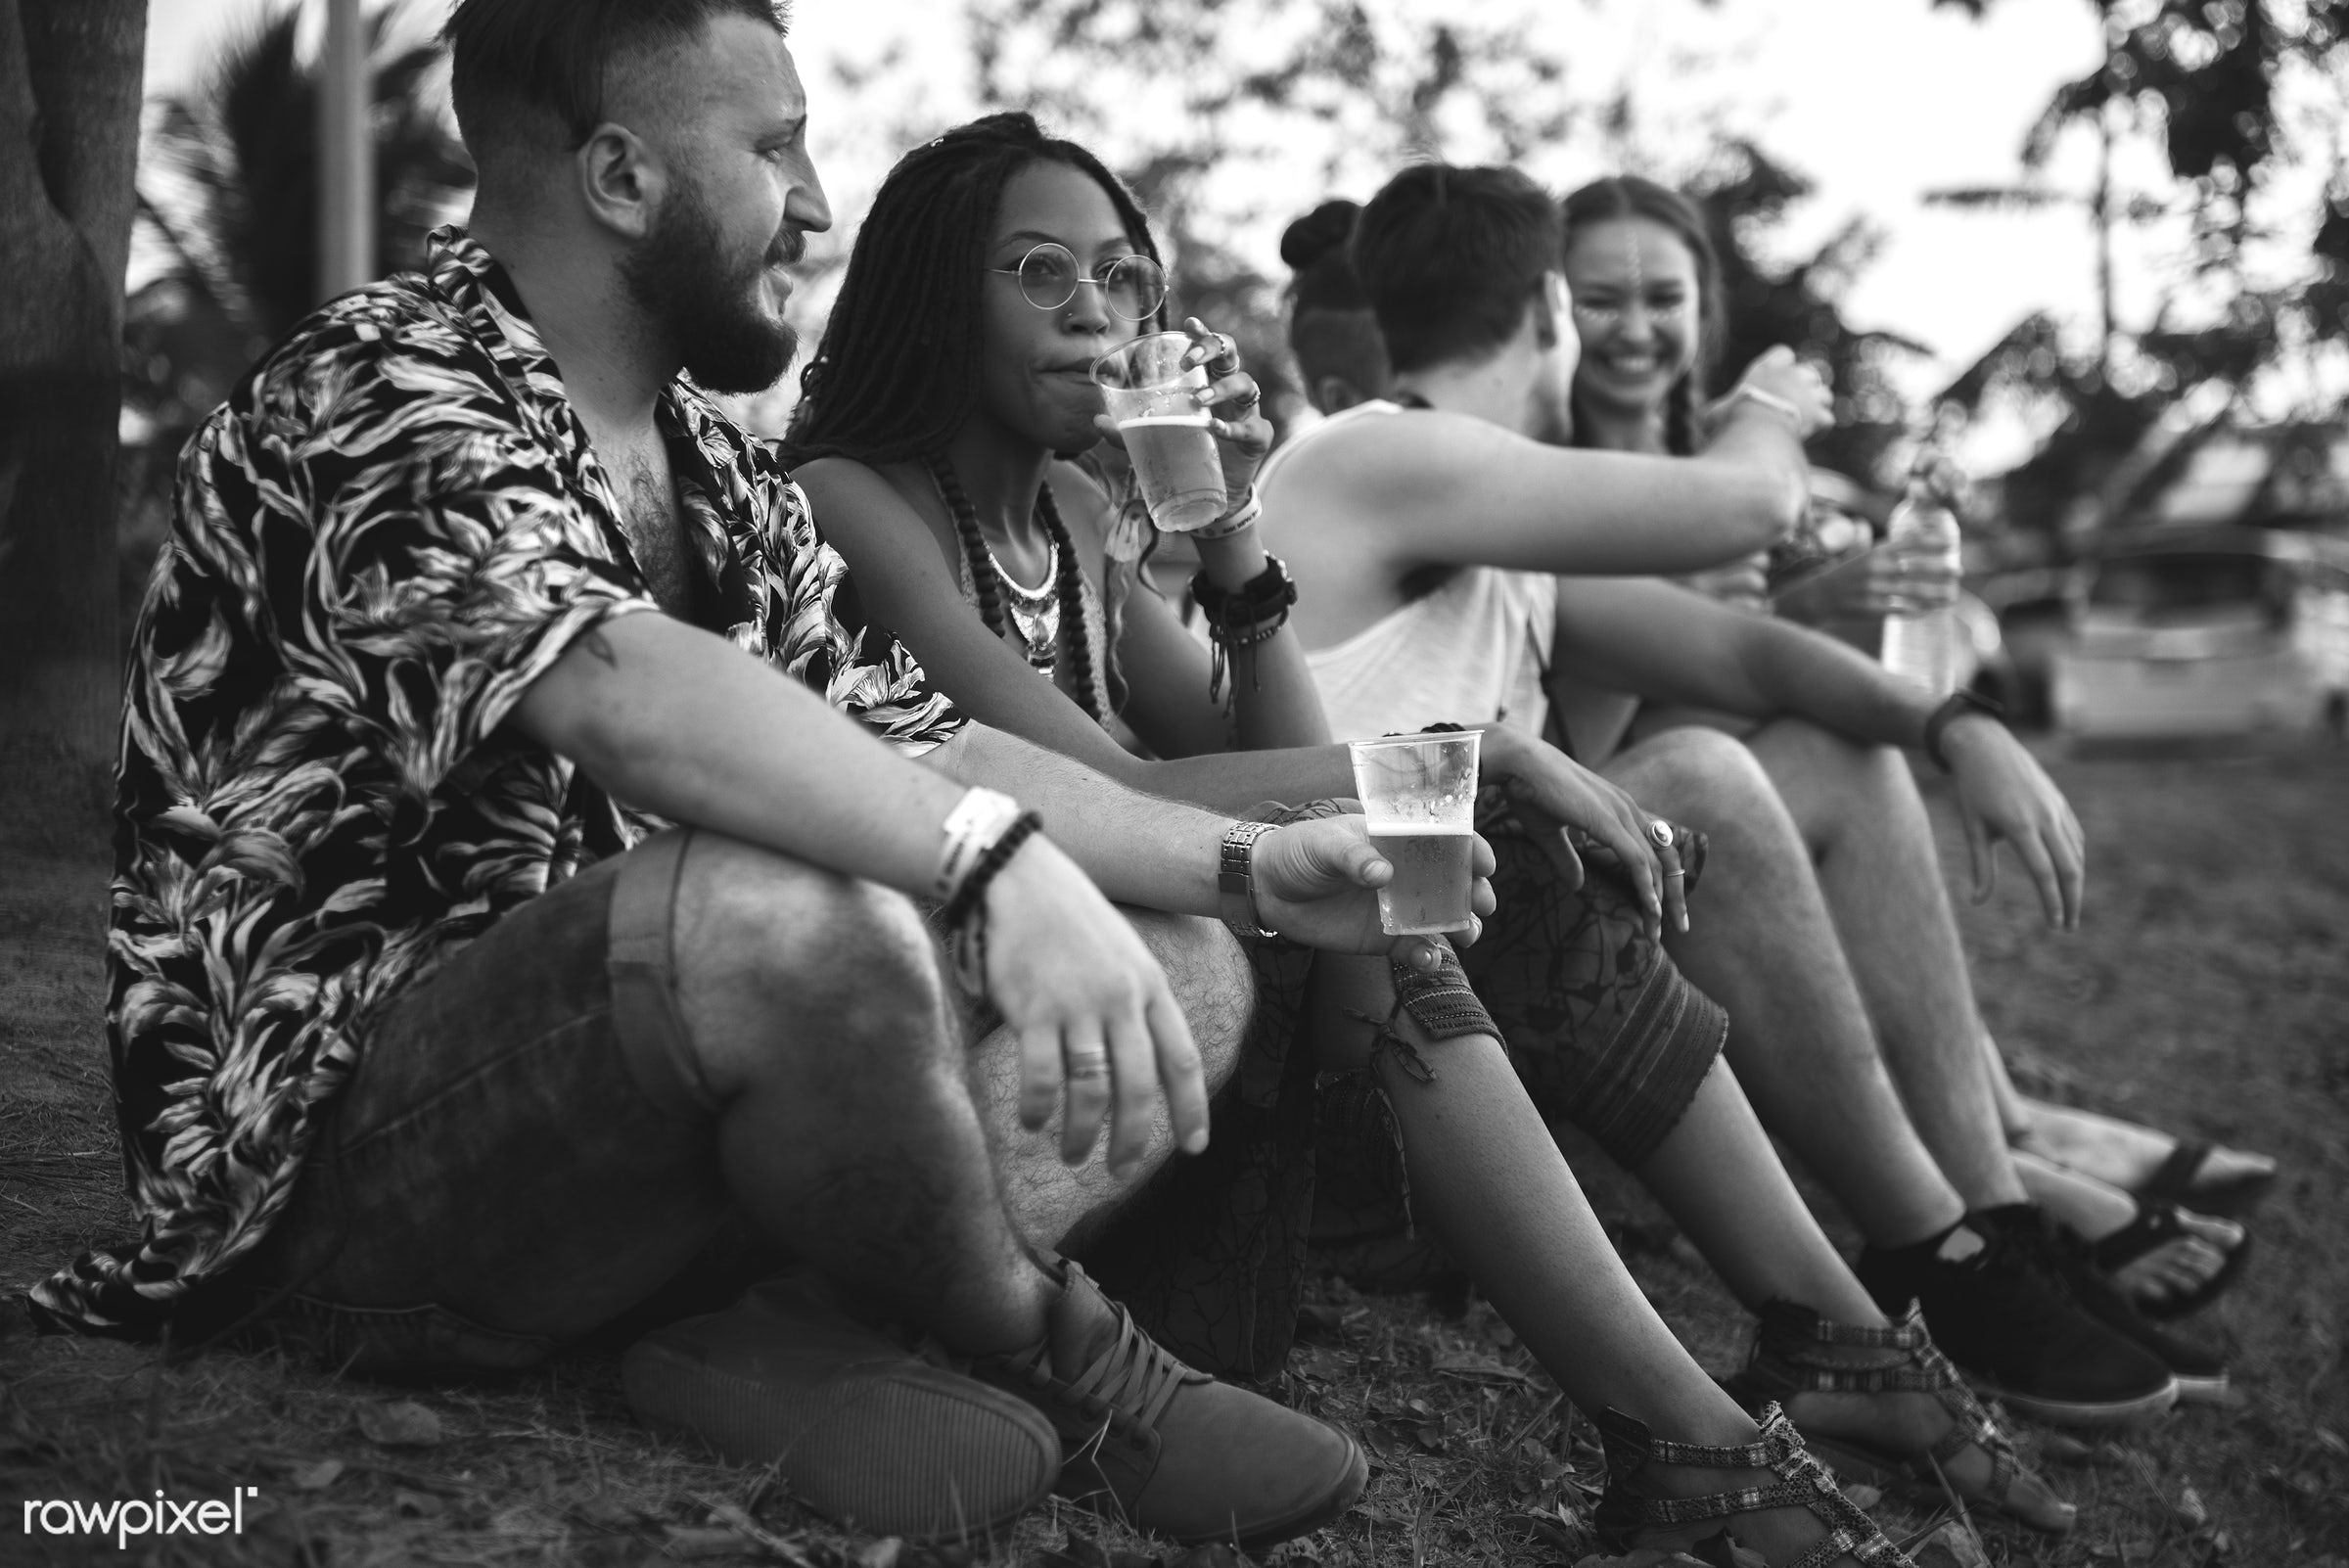 Diverse group of people enjoying a road trip and festival - crowd, activity, adults, carefree, concert, diversity, enjoying...